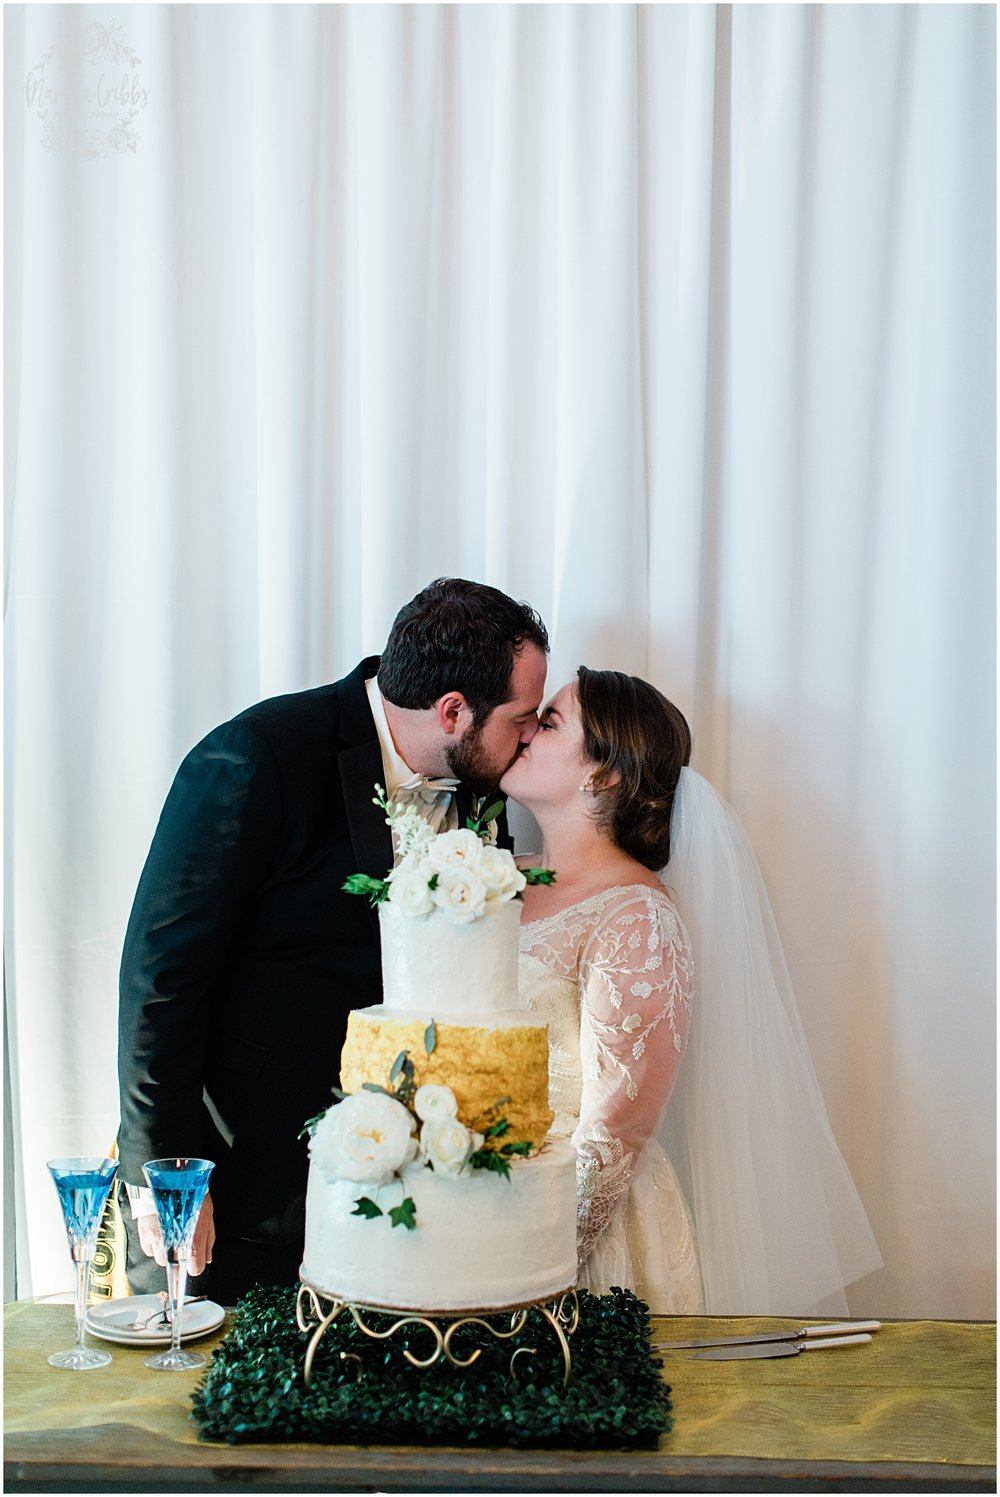 GORBY WEDDING | MARISSA CRIBBS PHOTOGRAPHY_5117.jpg